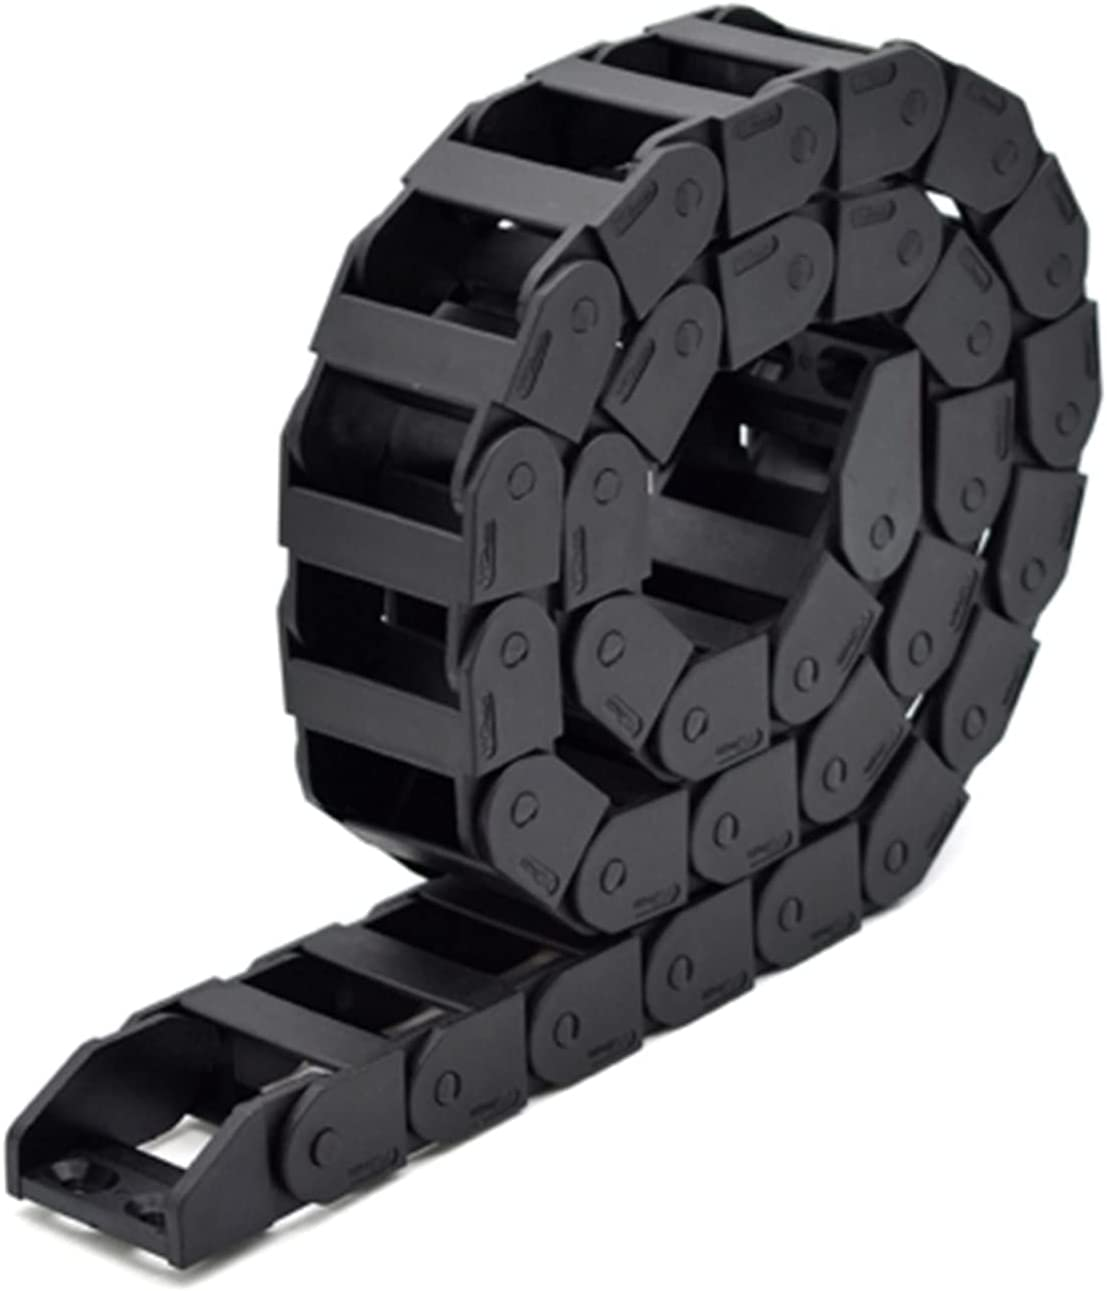 Drag Chain 1meter Cable Chain Bridge Type Non-Opening Plastic To